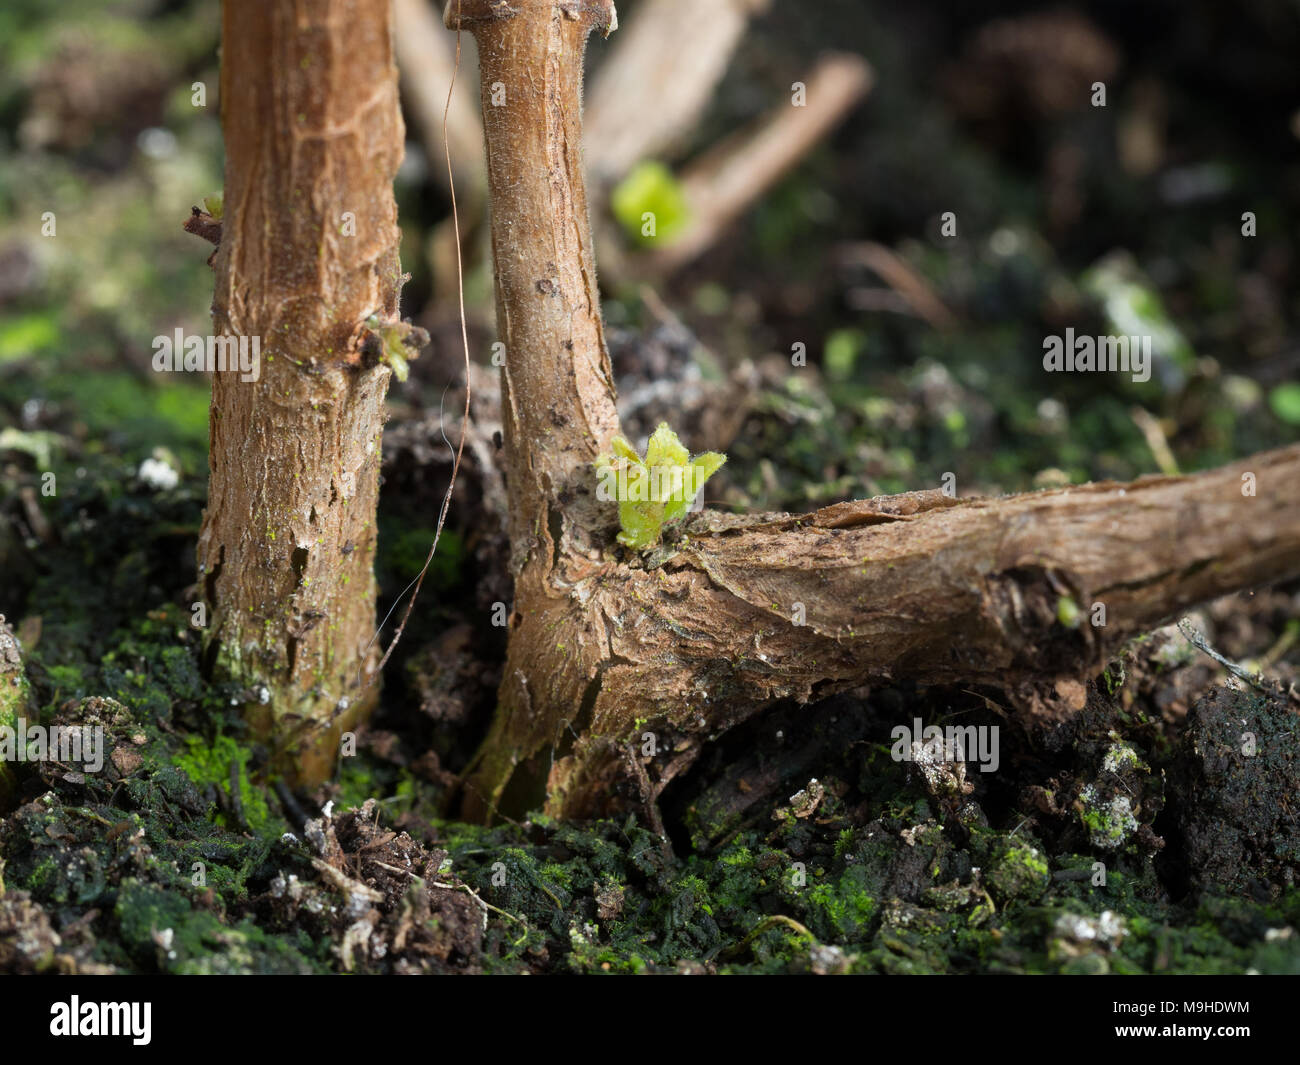 Close up of a new shoot bursting from the old growth of a fuchsia stem - Stock Image